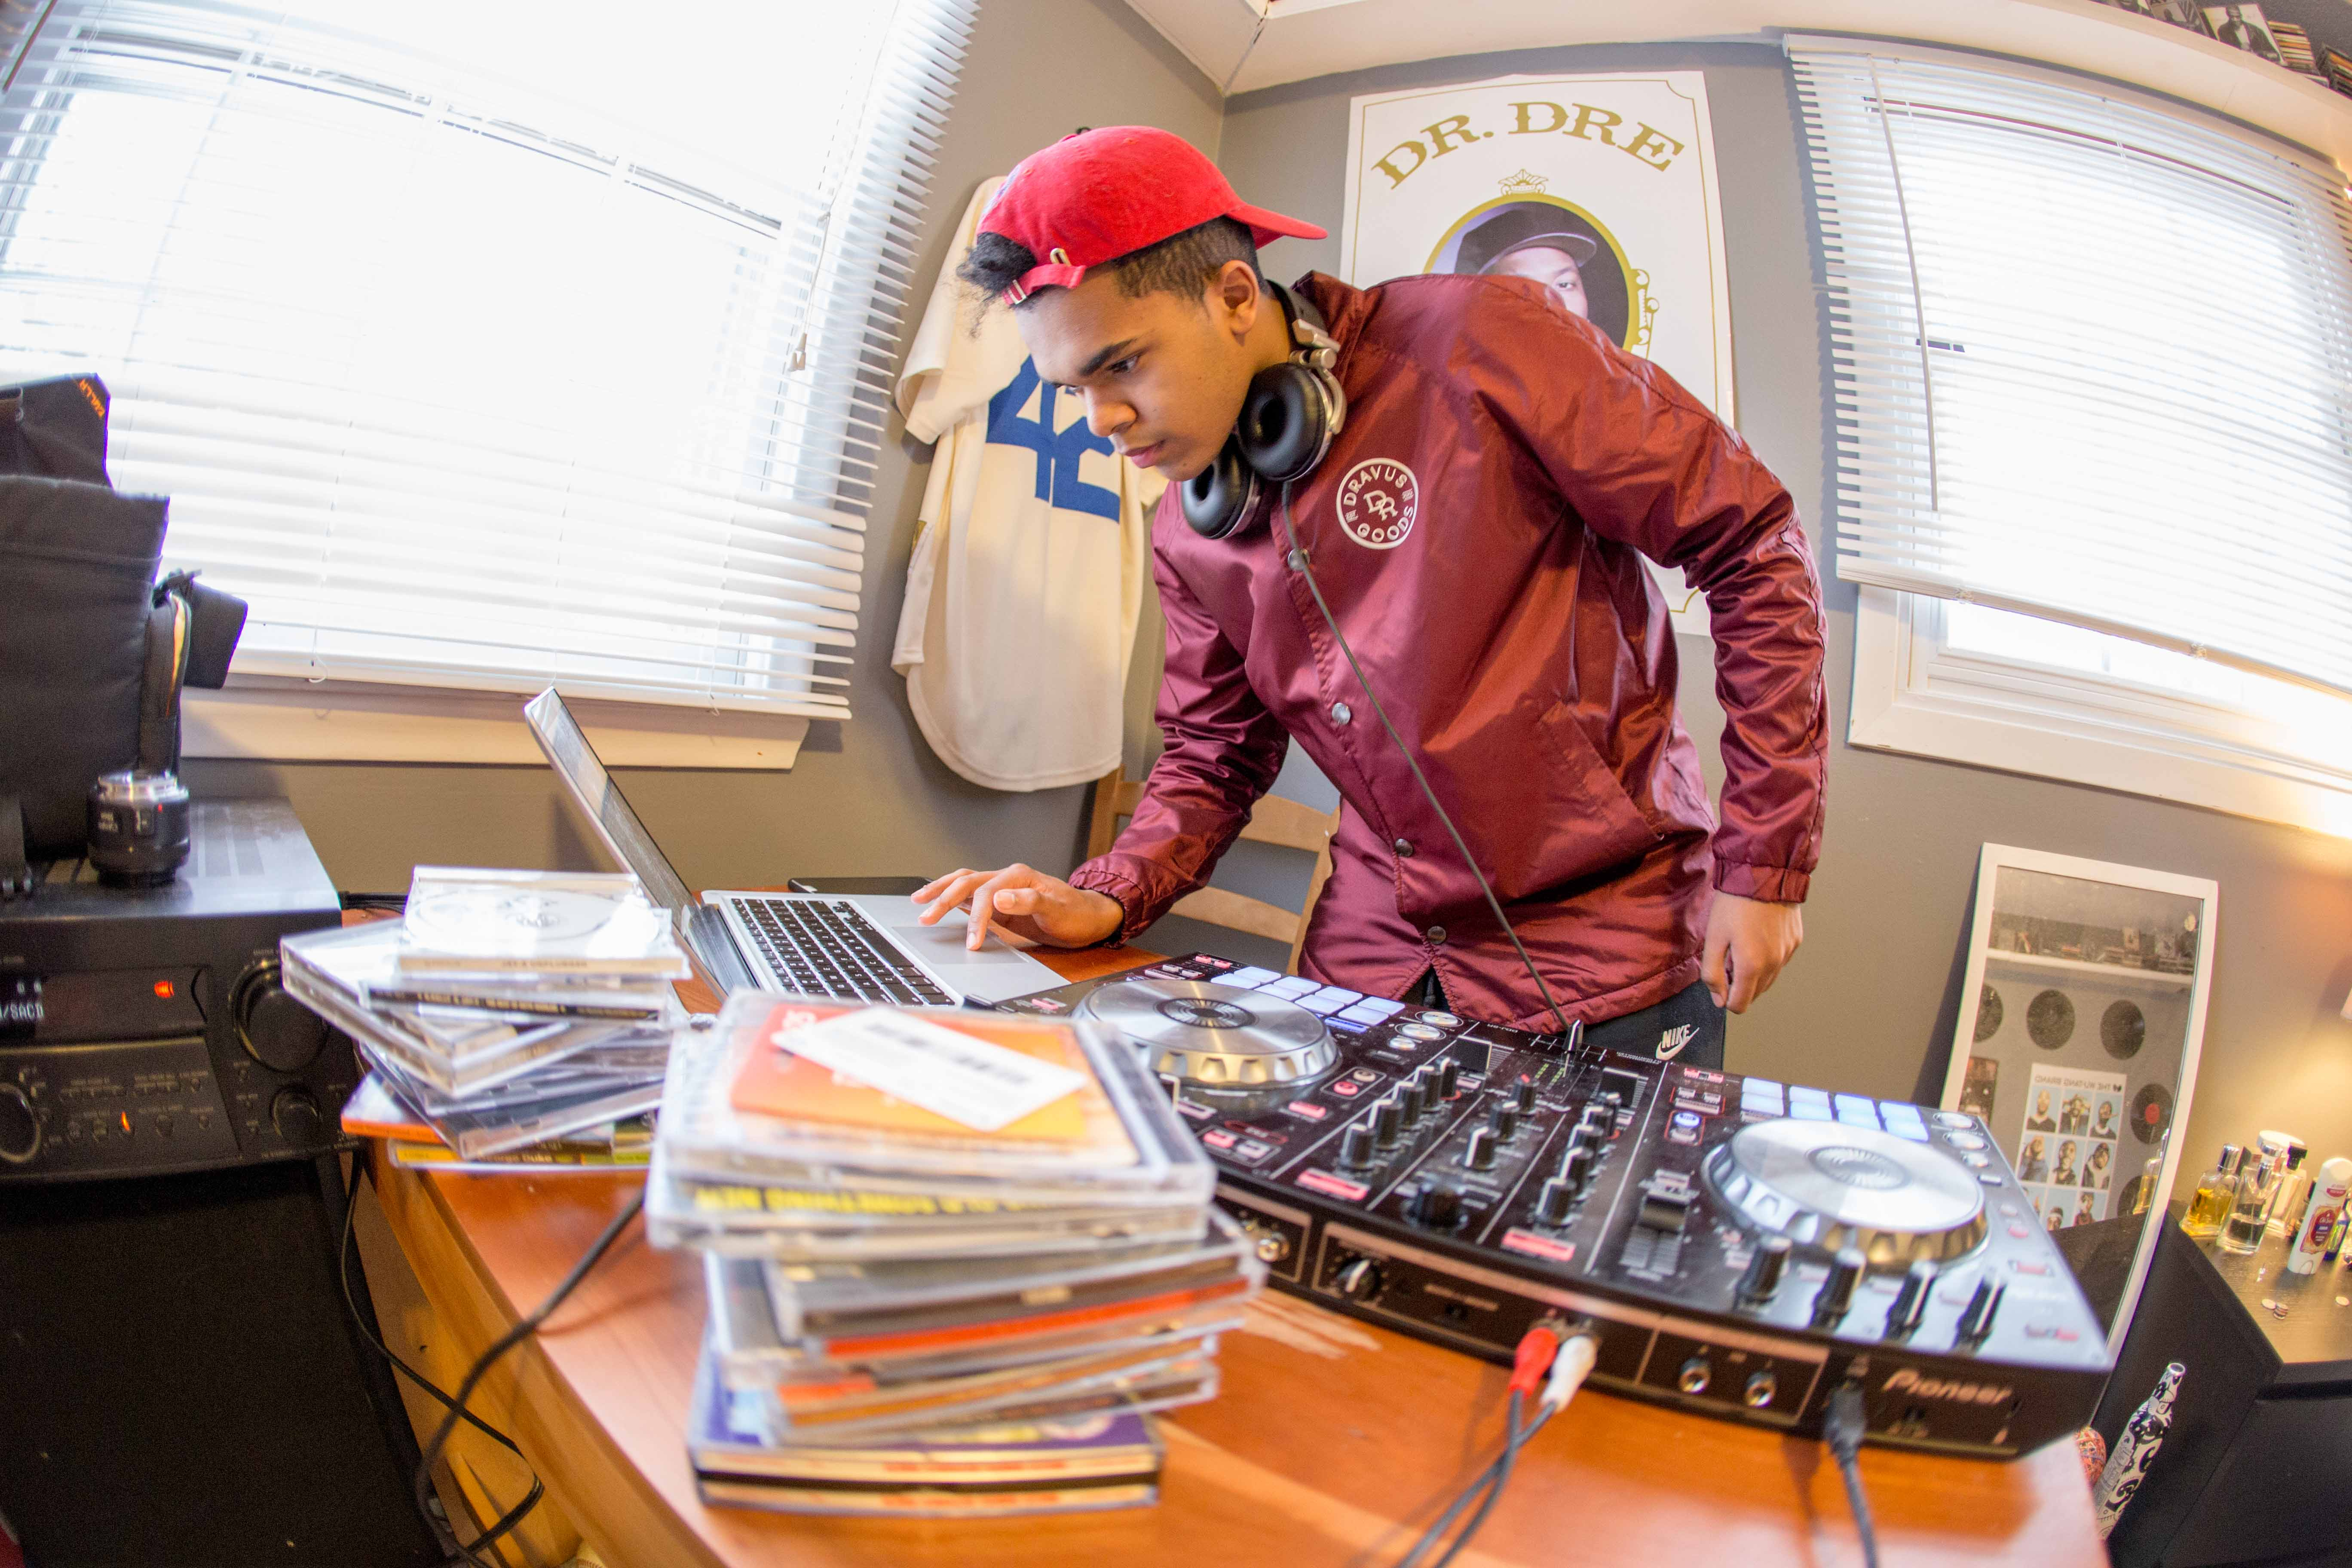 Sophomore Joe Holloway mixes a Kendrick Lamar song in his bedroom Feb. 7. Holloway has been DJing for approximately a year-and-a-half and focuses on heavy bass and trap music.